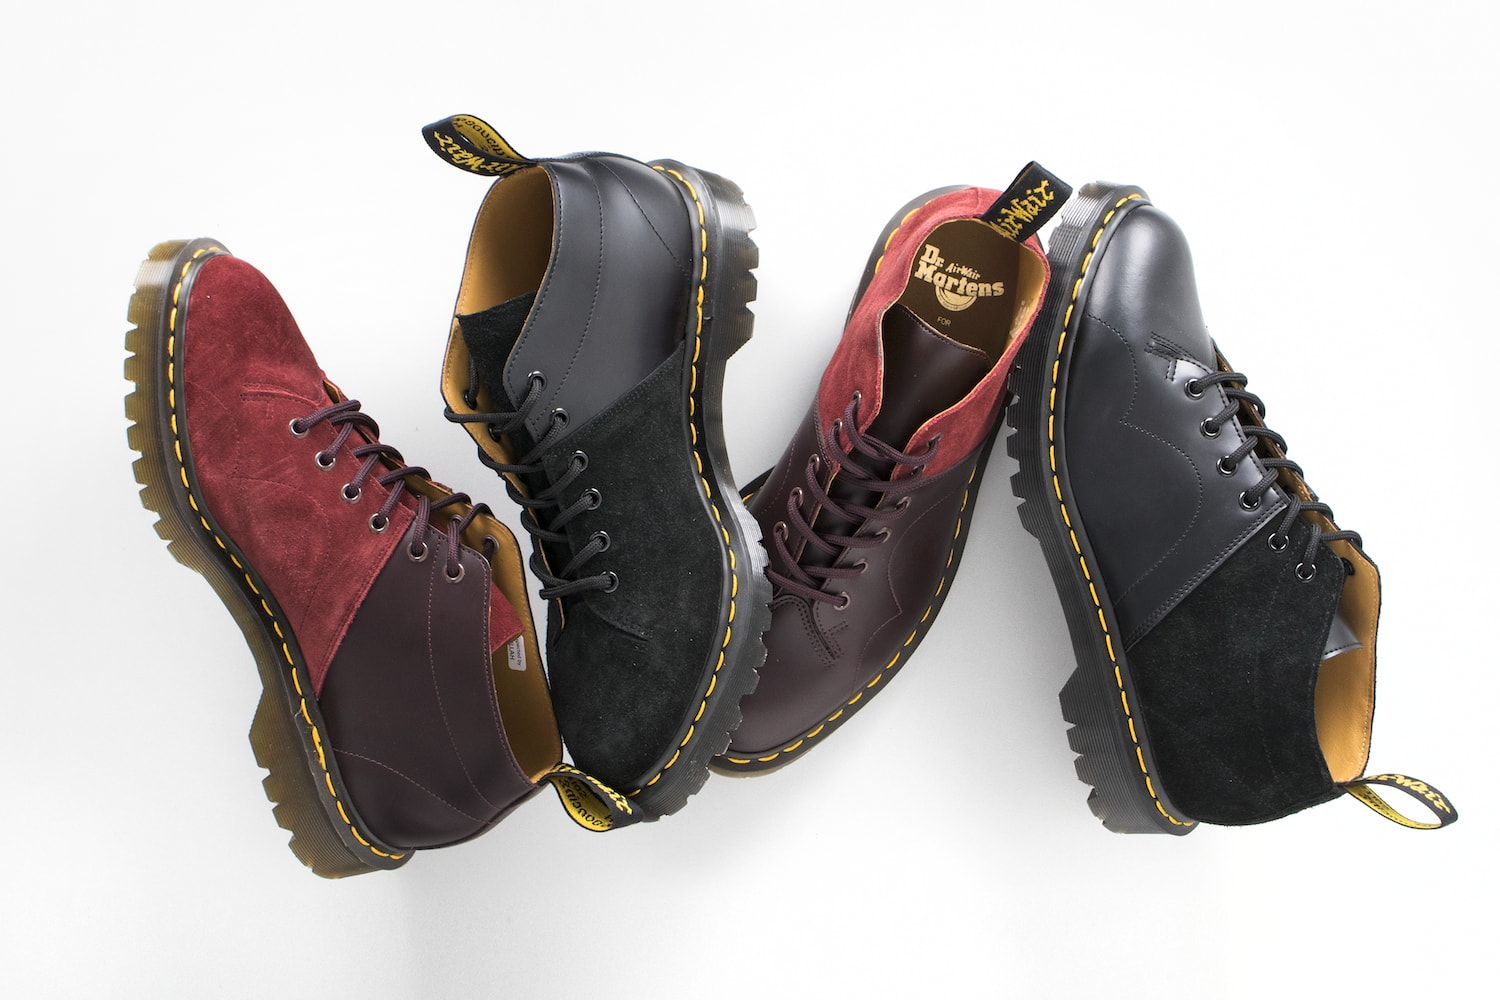 dr-martens-engineered-garments-church-monkey-boot-05 (1)